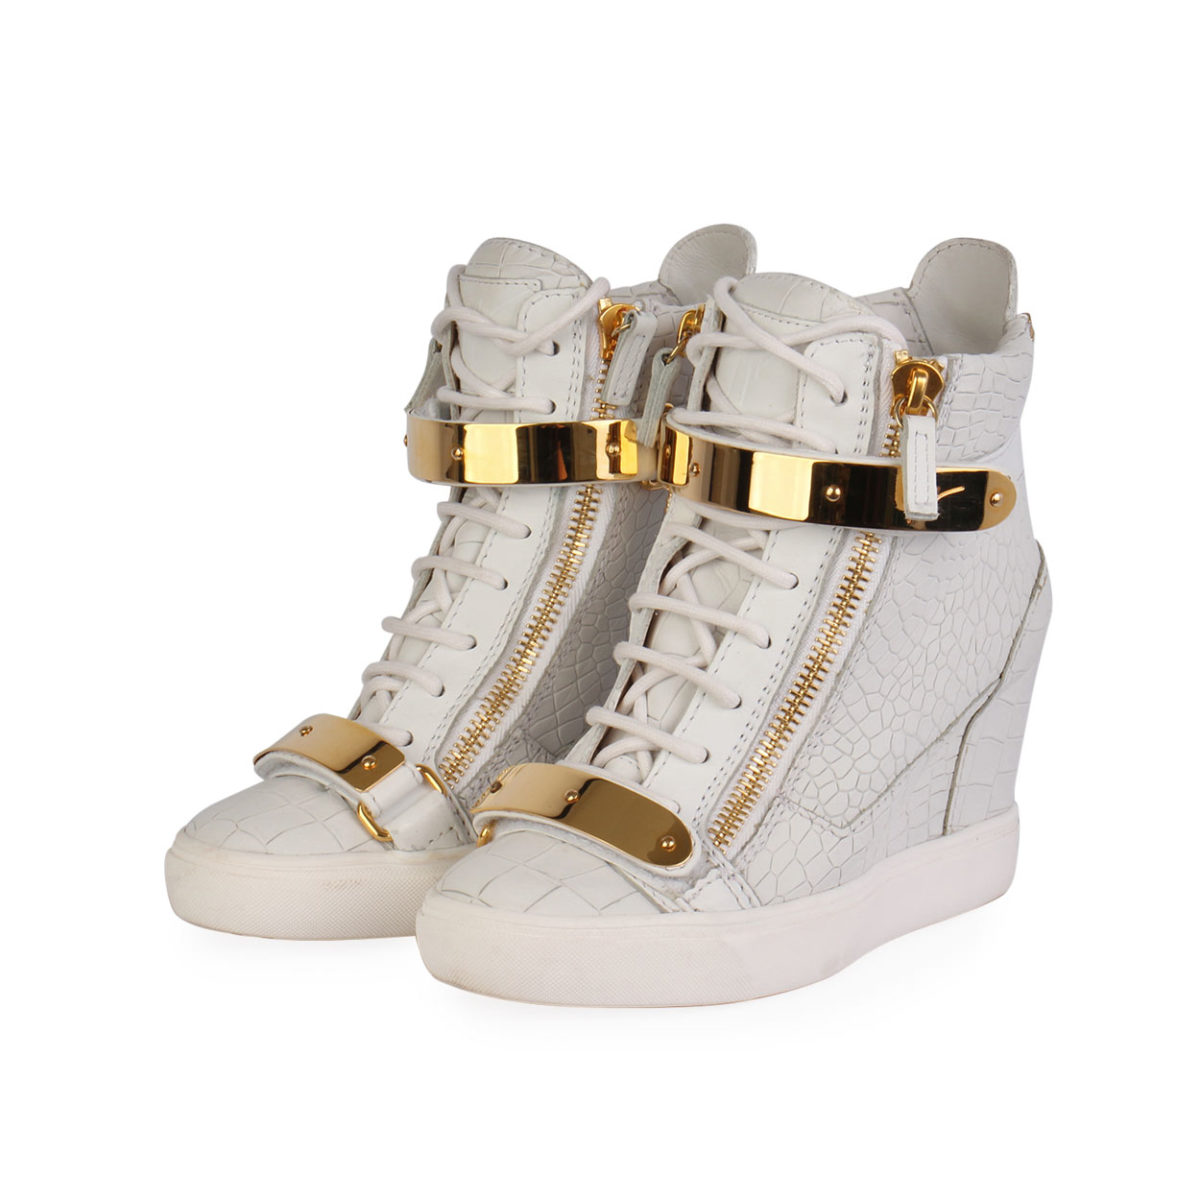 bc71d3c26ac38 GIUSEPPE ZANOTTI Leather High Top Wedge Sneakers White - S: 37 (4 ...